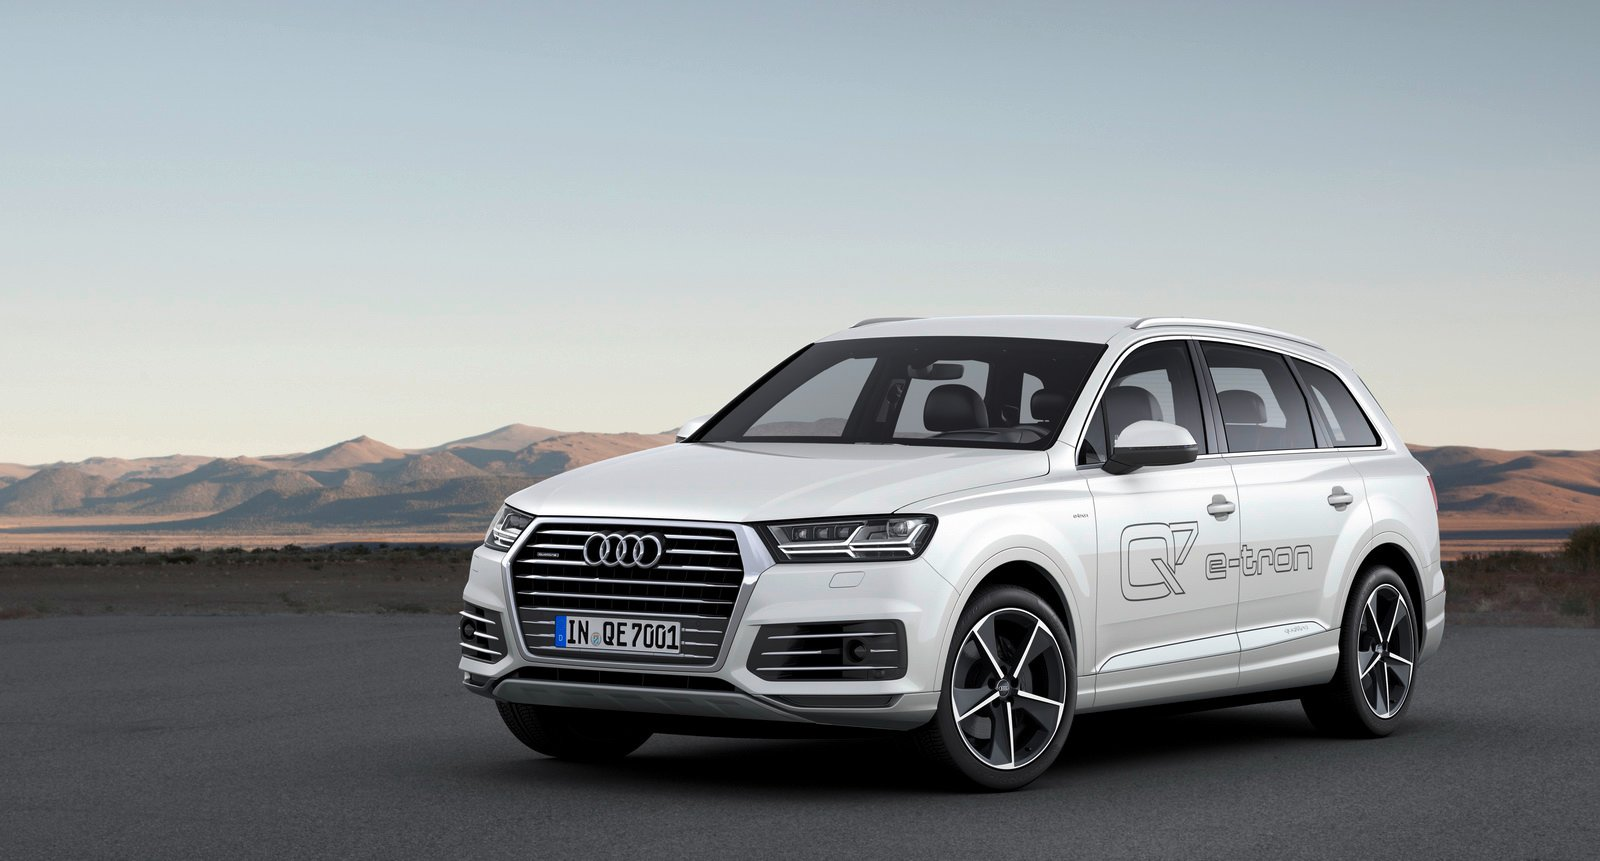 2015 audi q7 e tron diesel plug in hybrid revealed australia confirmed update photos caradvice. Black Bedroom Furniture Sets. Home Design Ideas